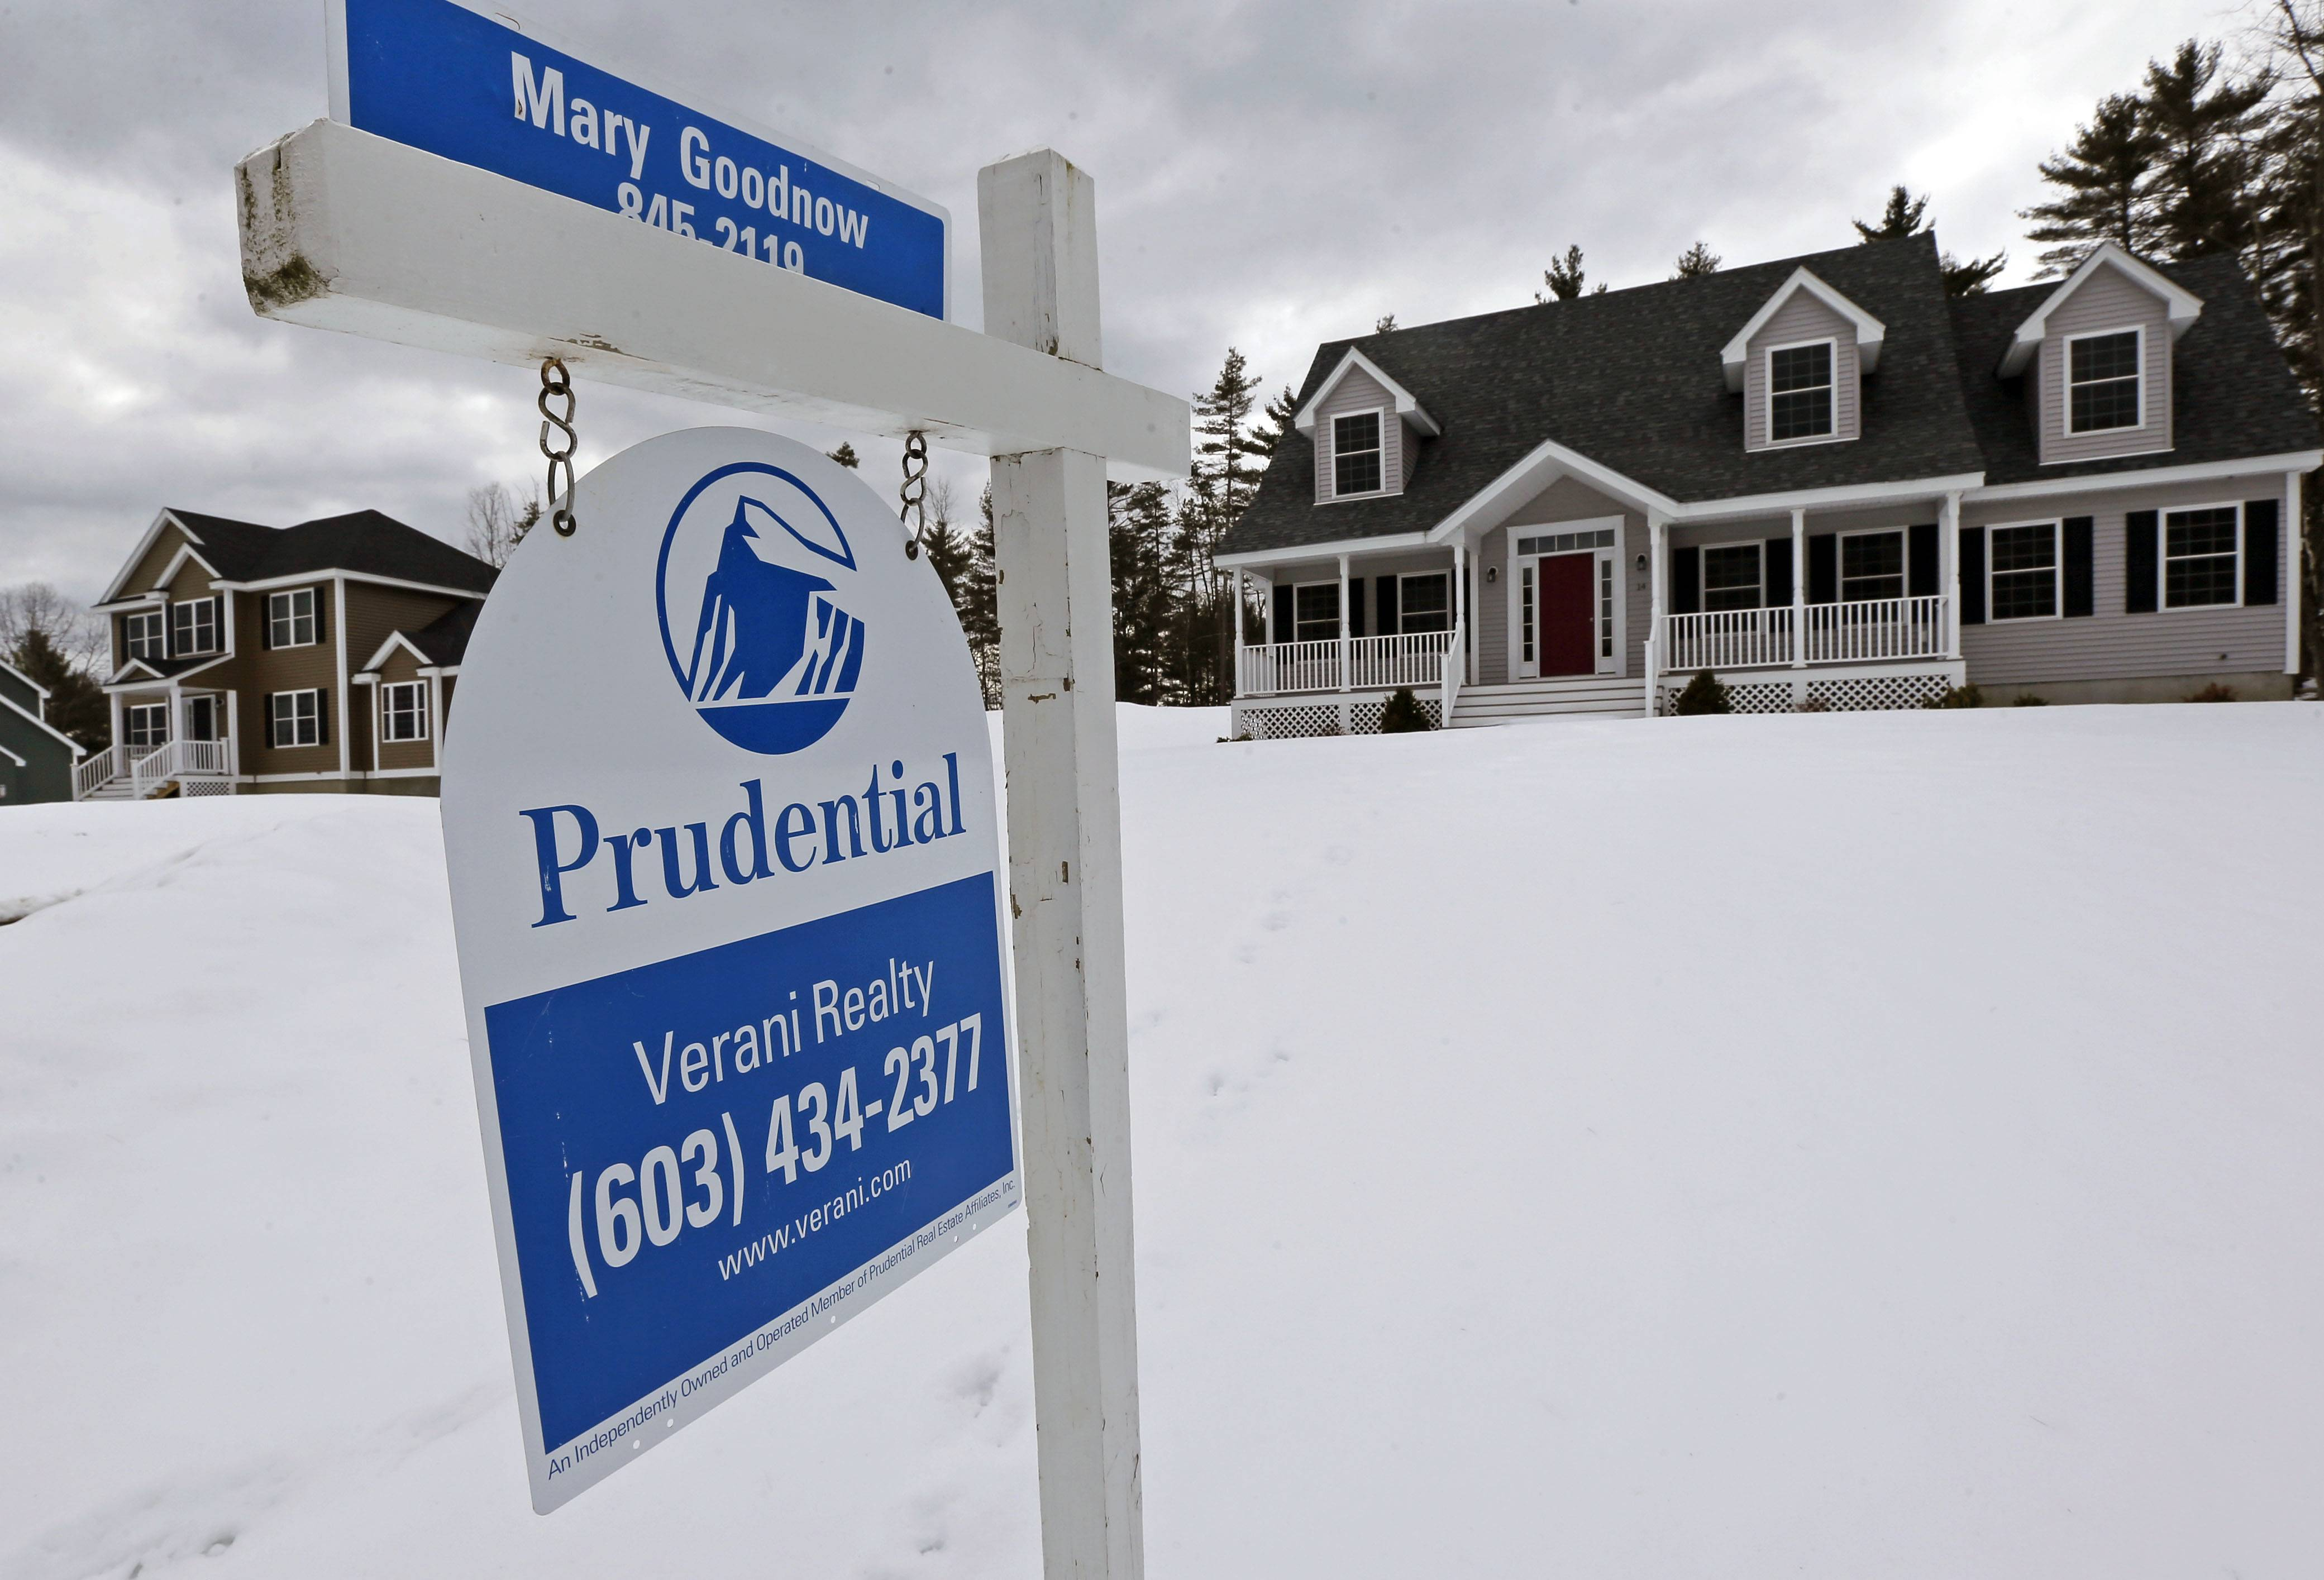 U.S. home prices fell for the second straight month in December as brutally cold weather, tight supply and higher costs slowed sales.